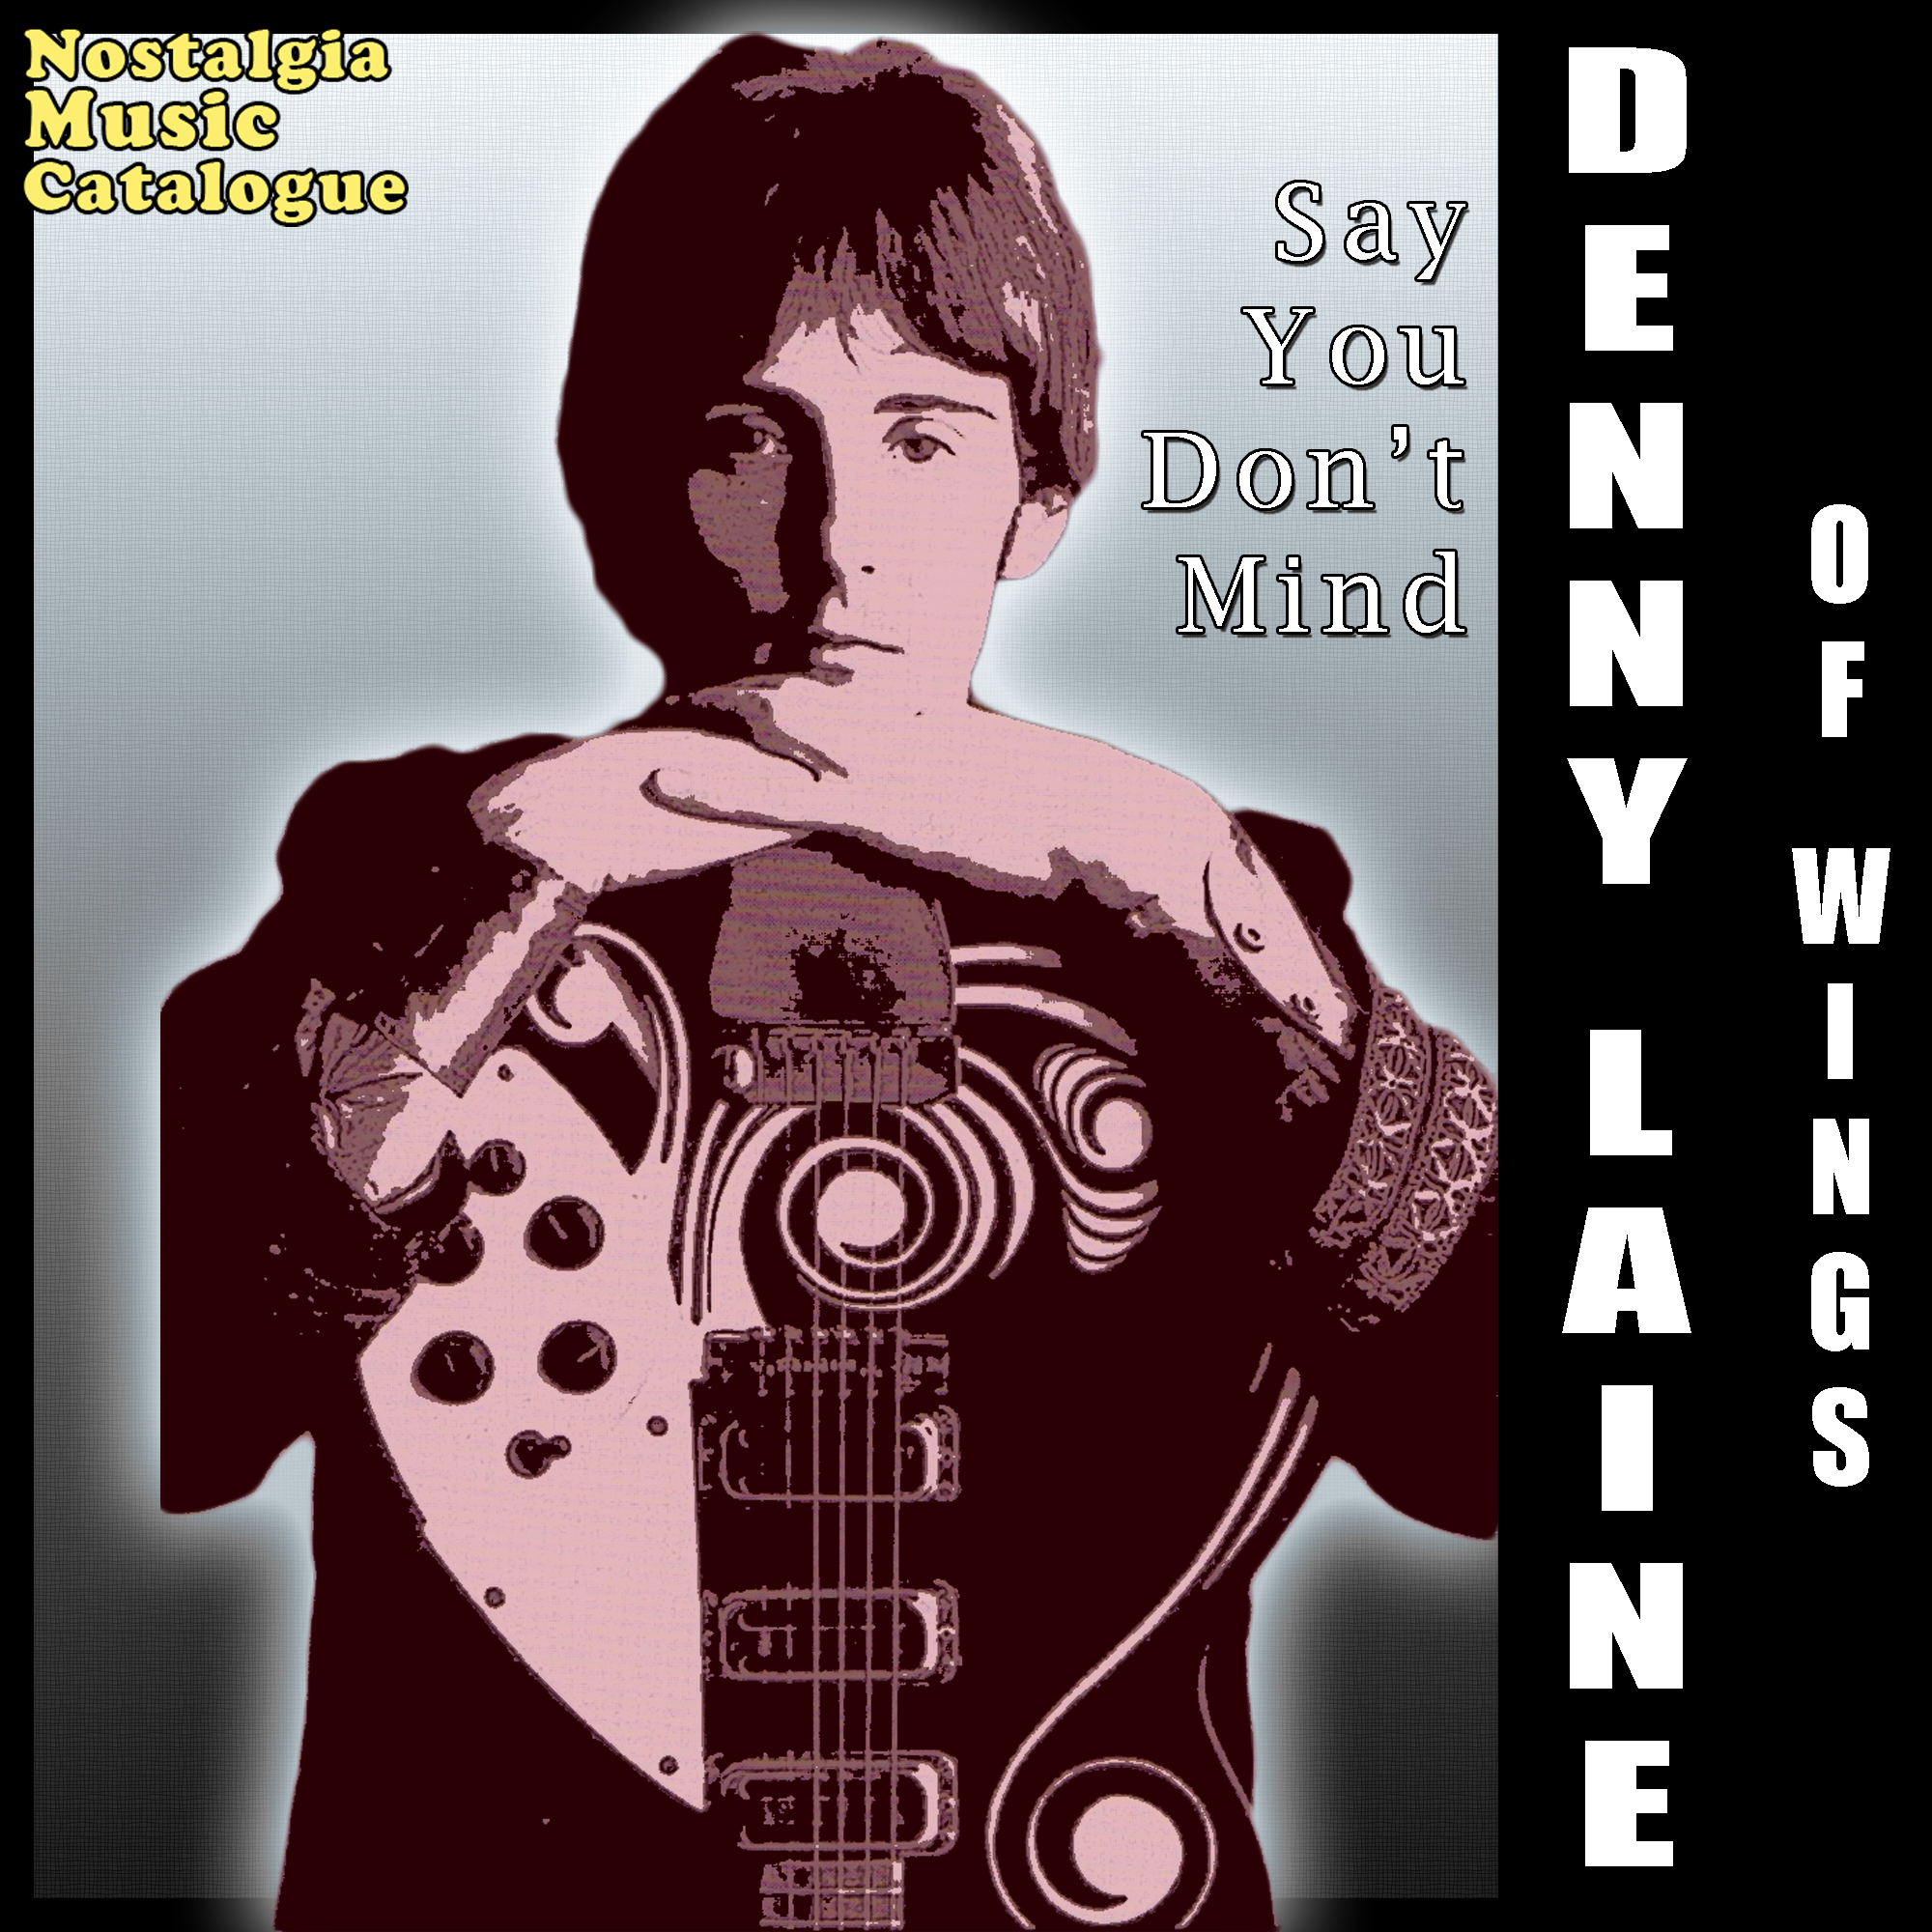 Denny Laine of Wings - Say You Don't Mind